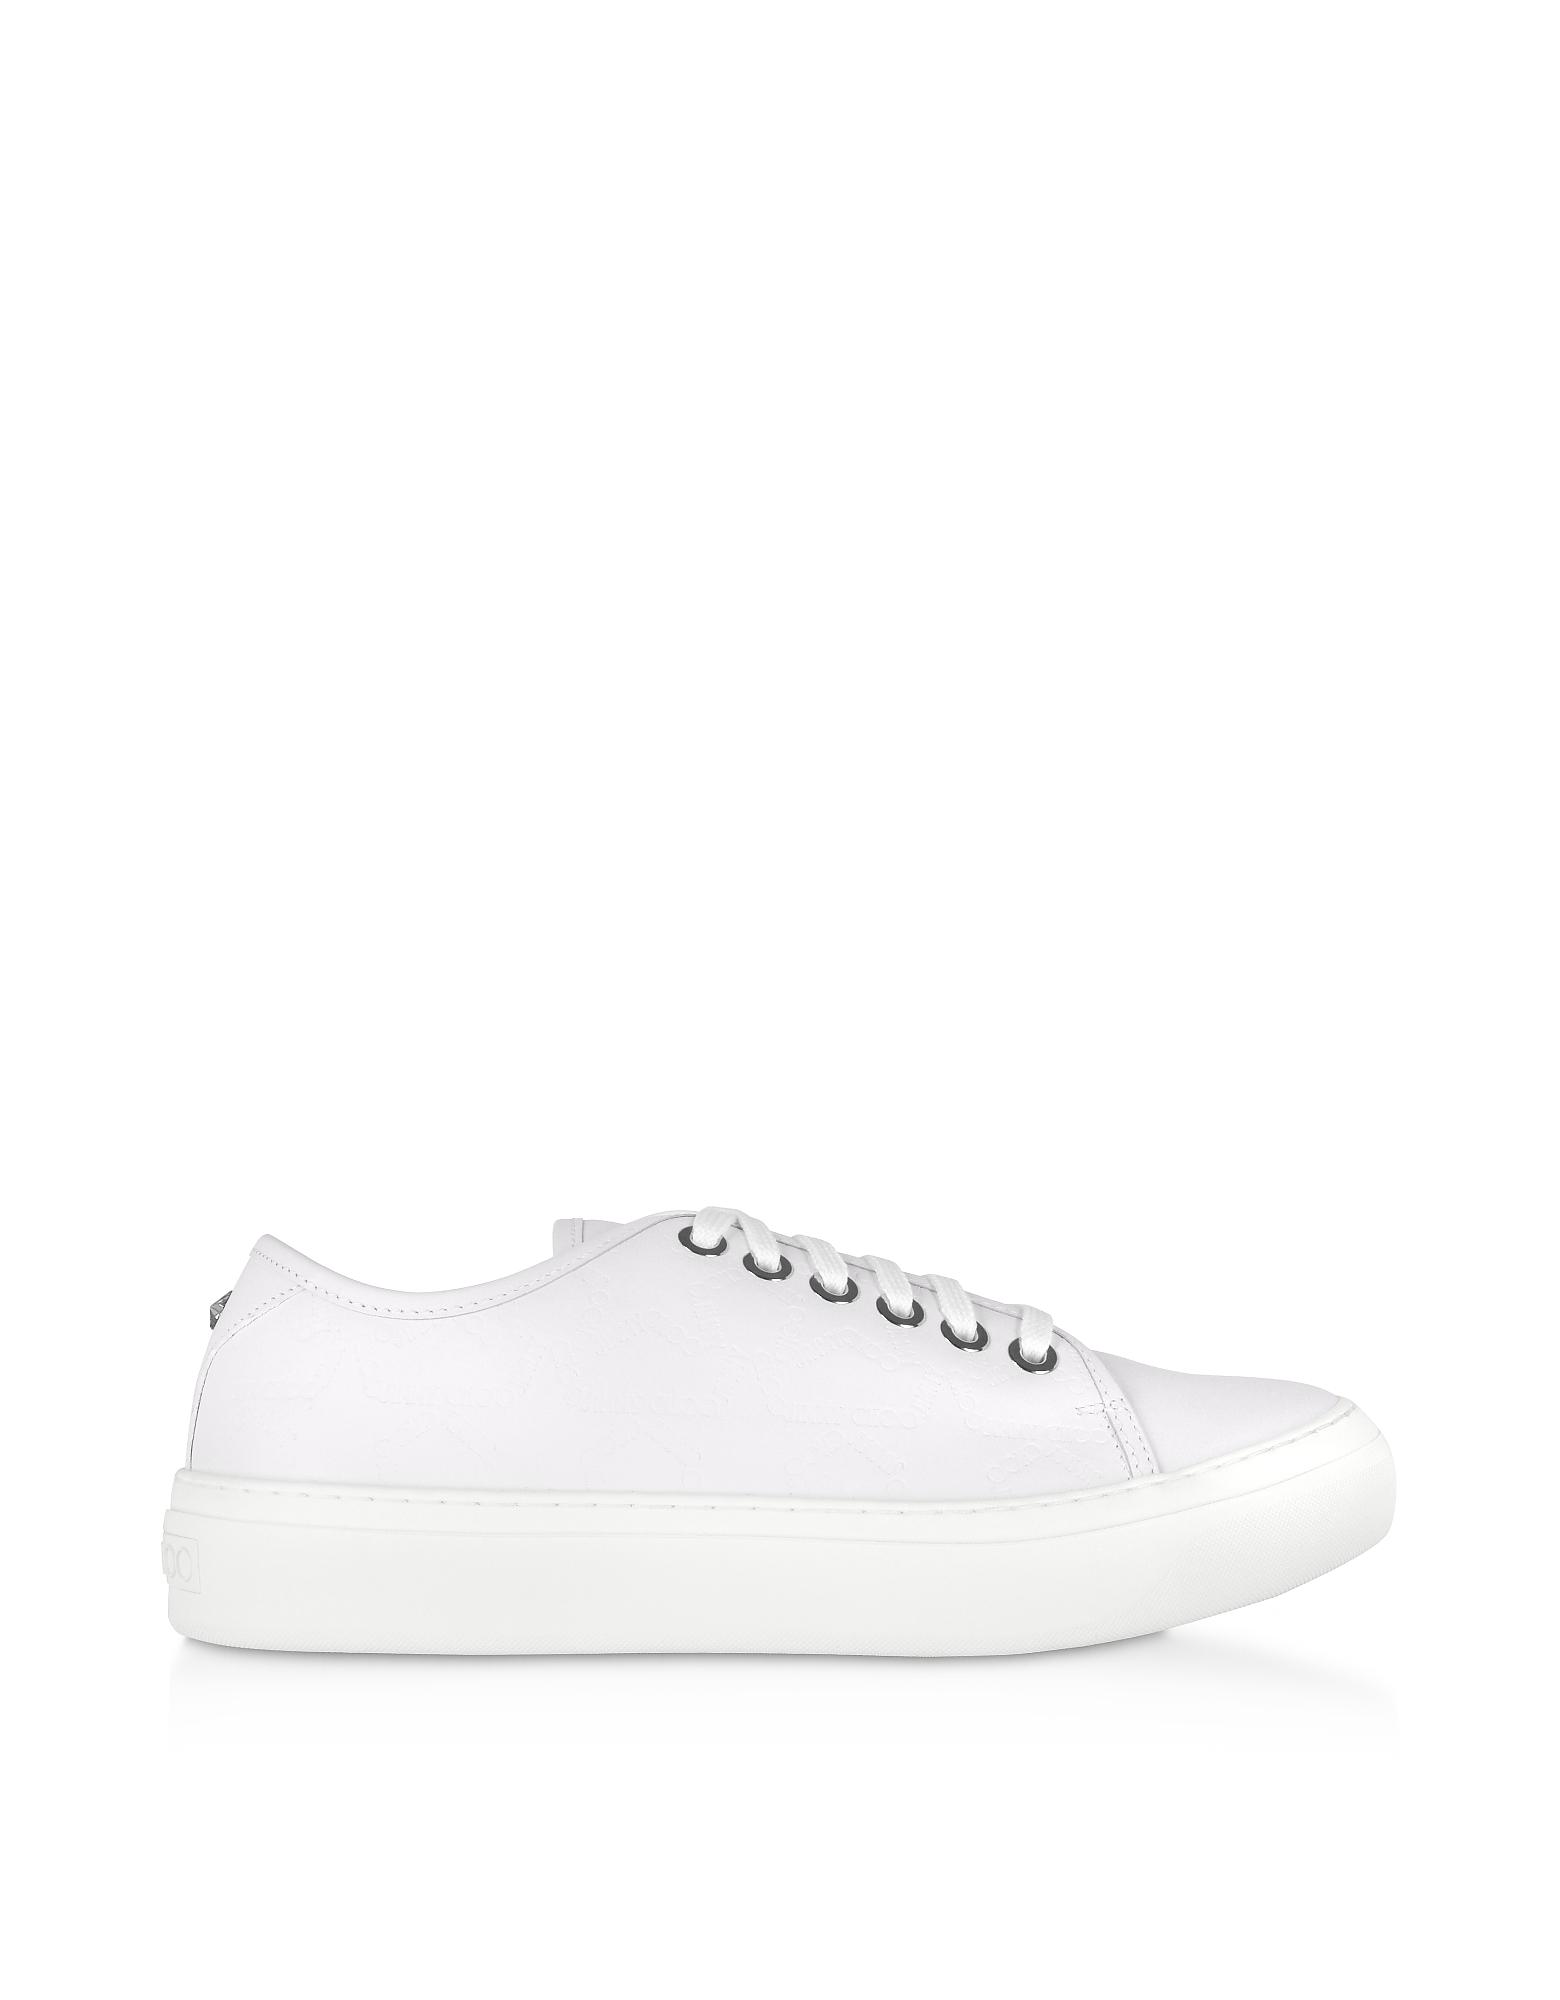 Jimmy Choo Designer Shoes, White Embossed Leather AIDEN Low Top Trainers